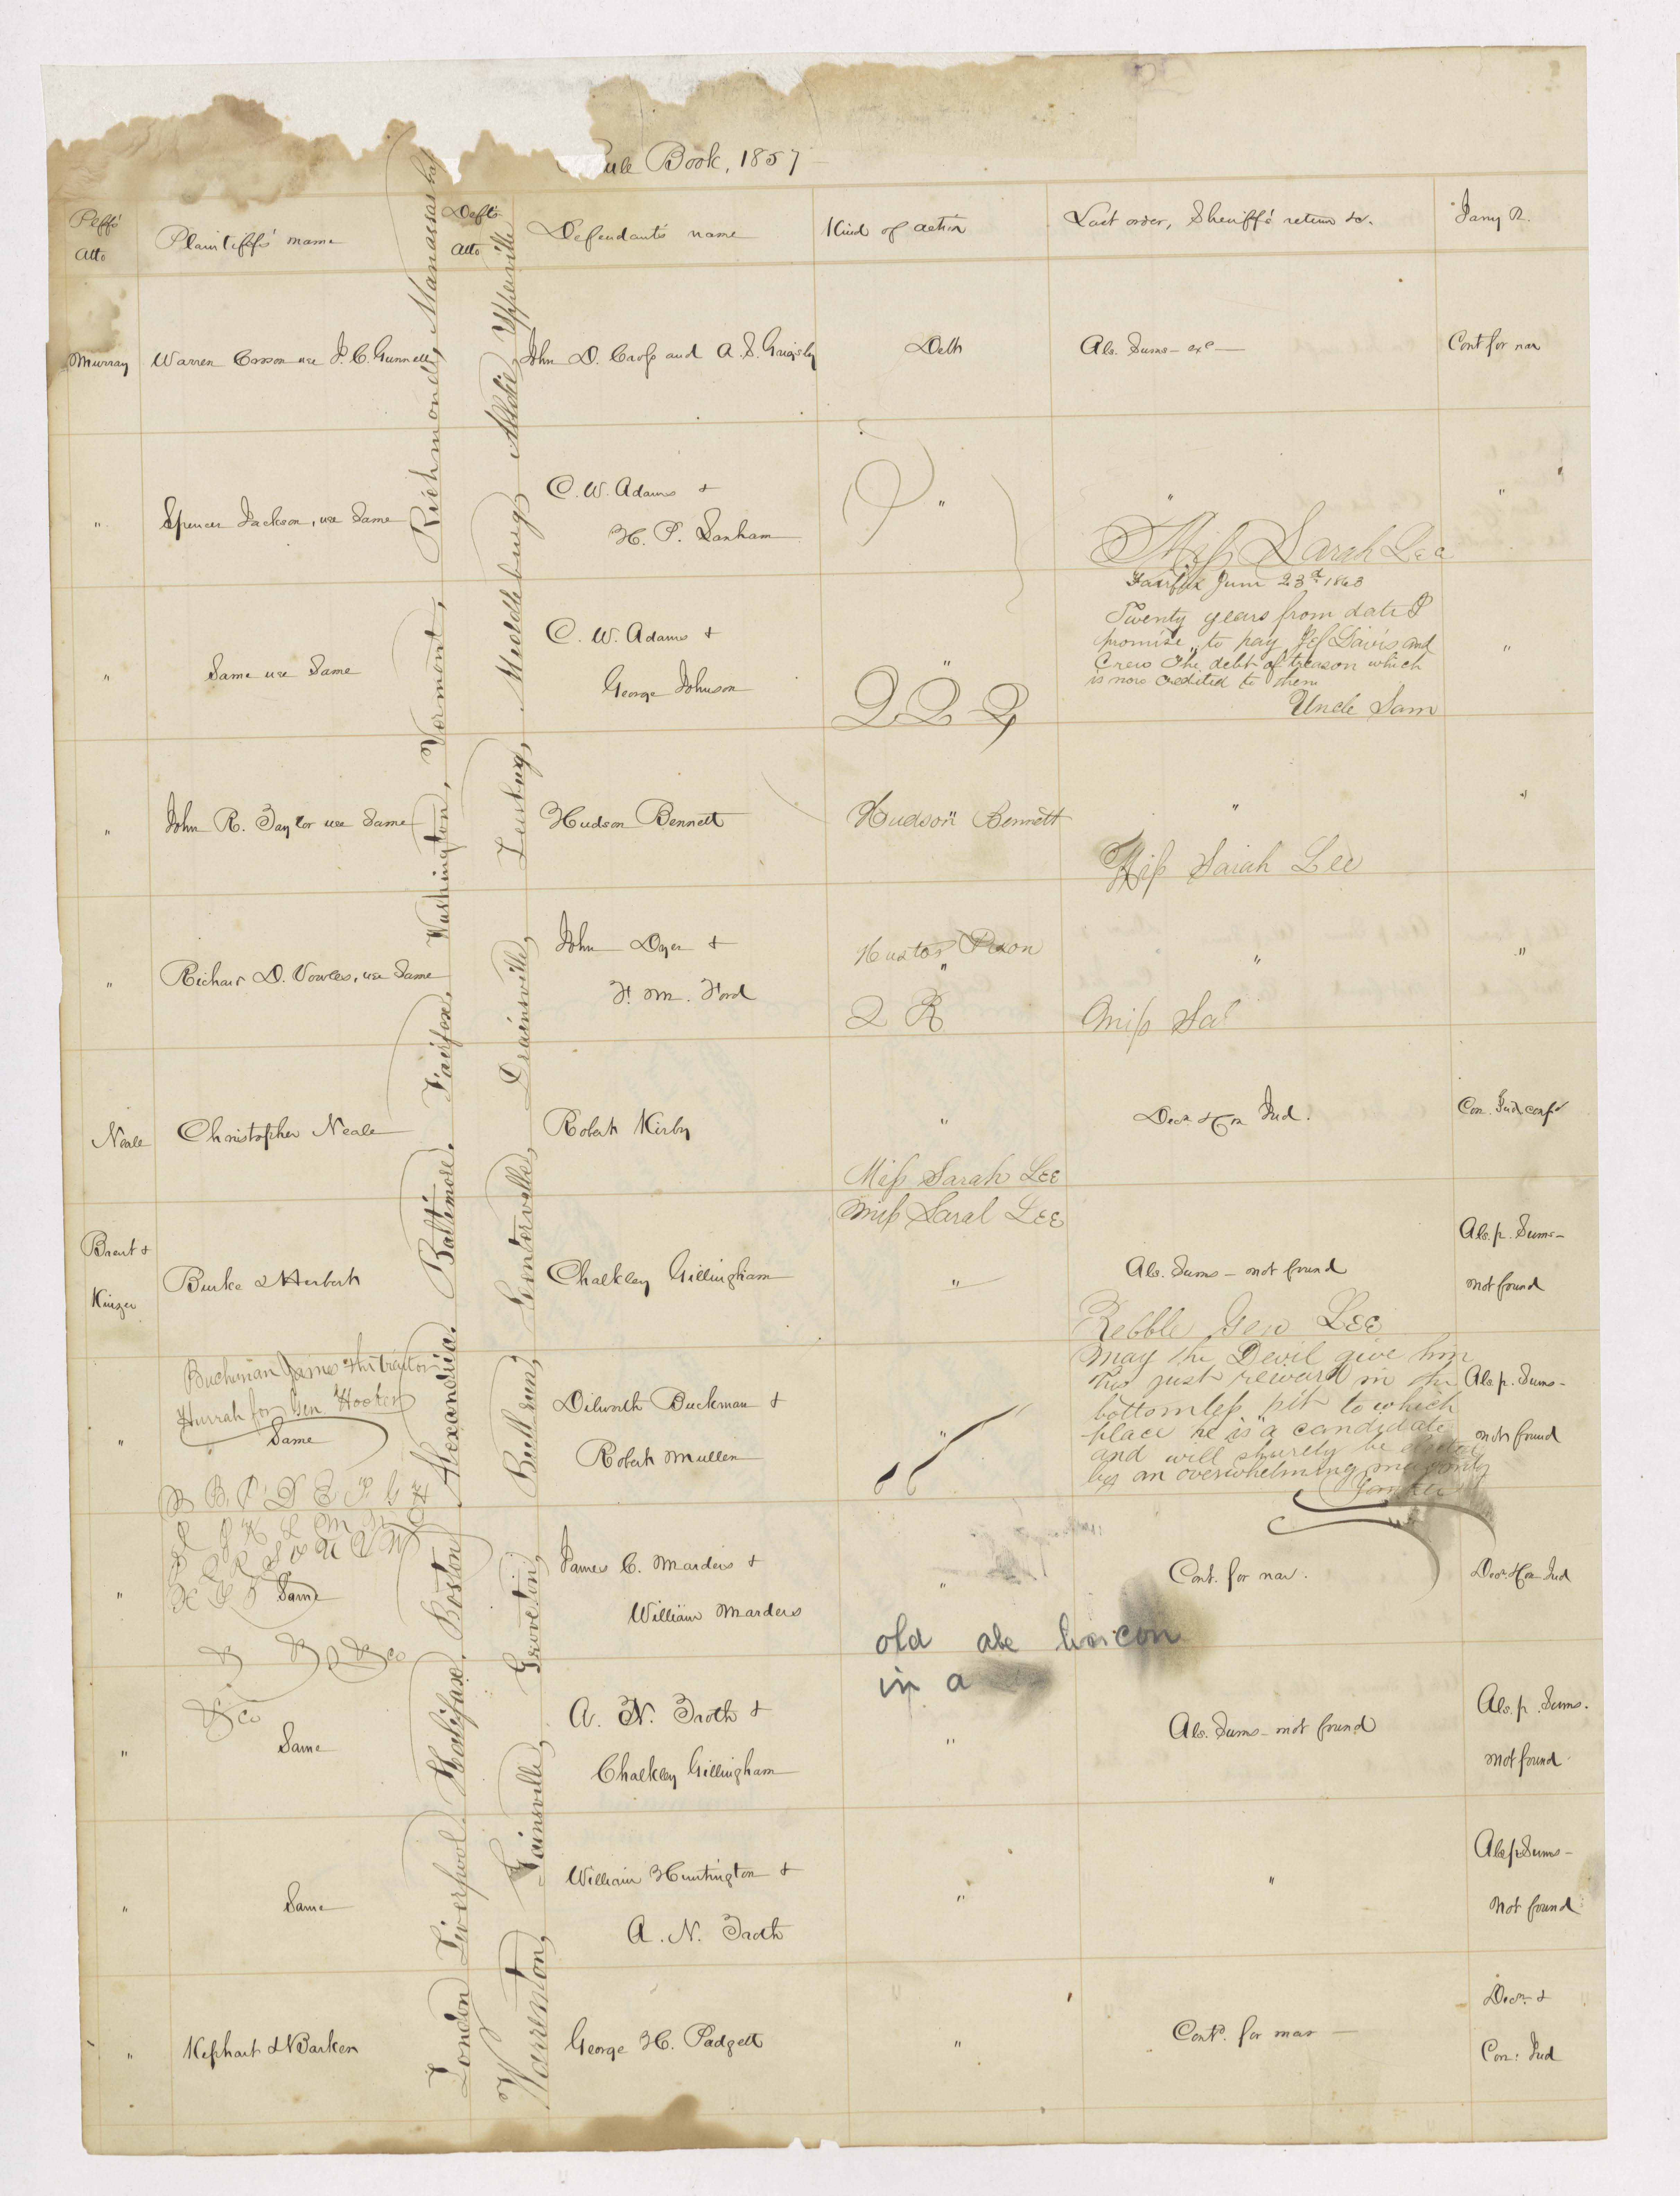 Docket book page with Civil War-era graffiti